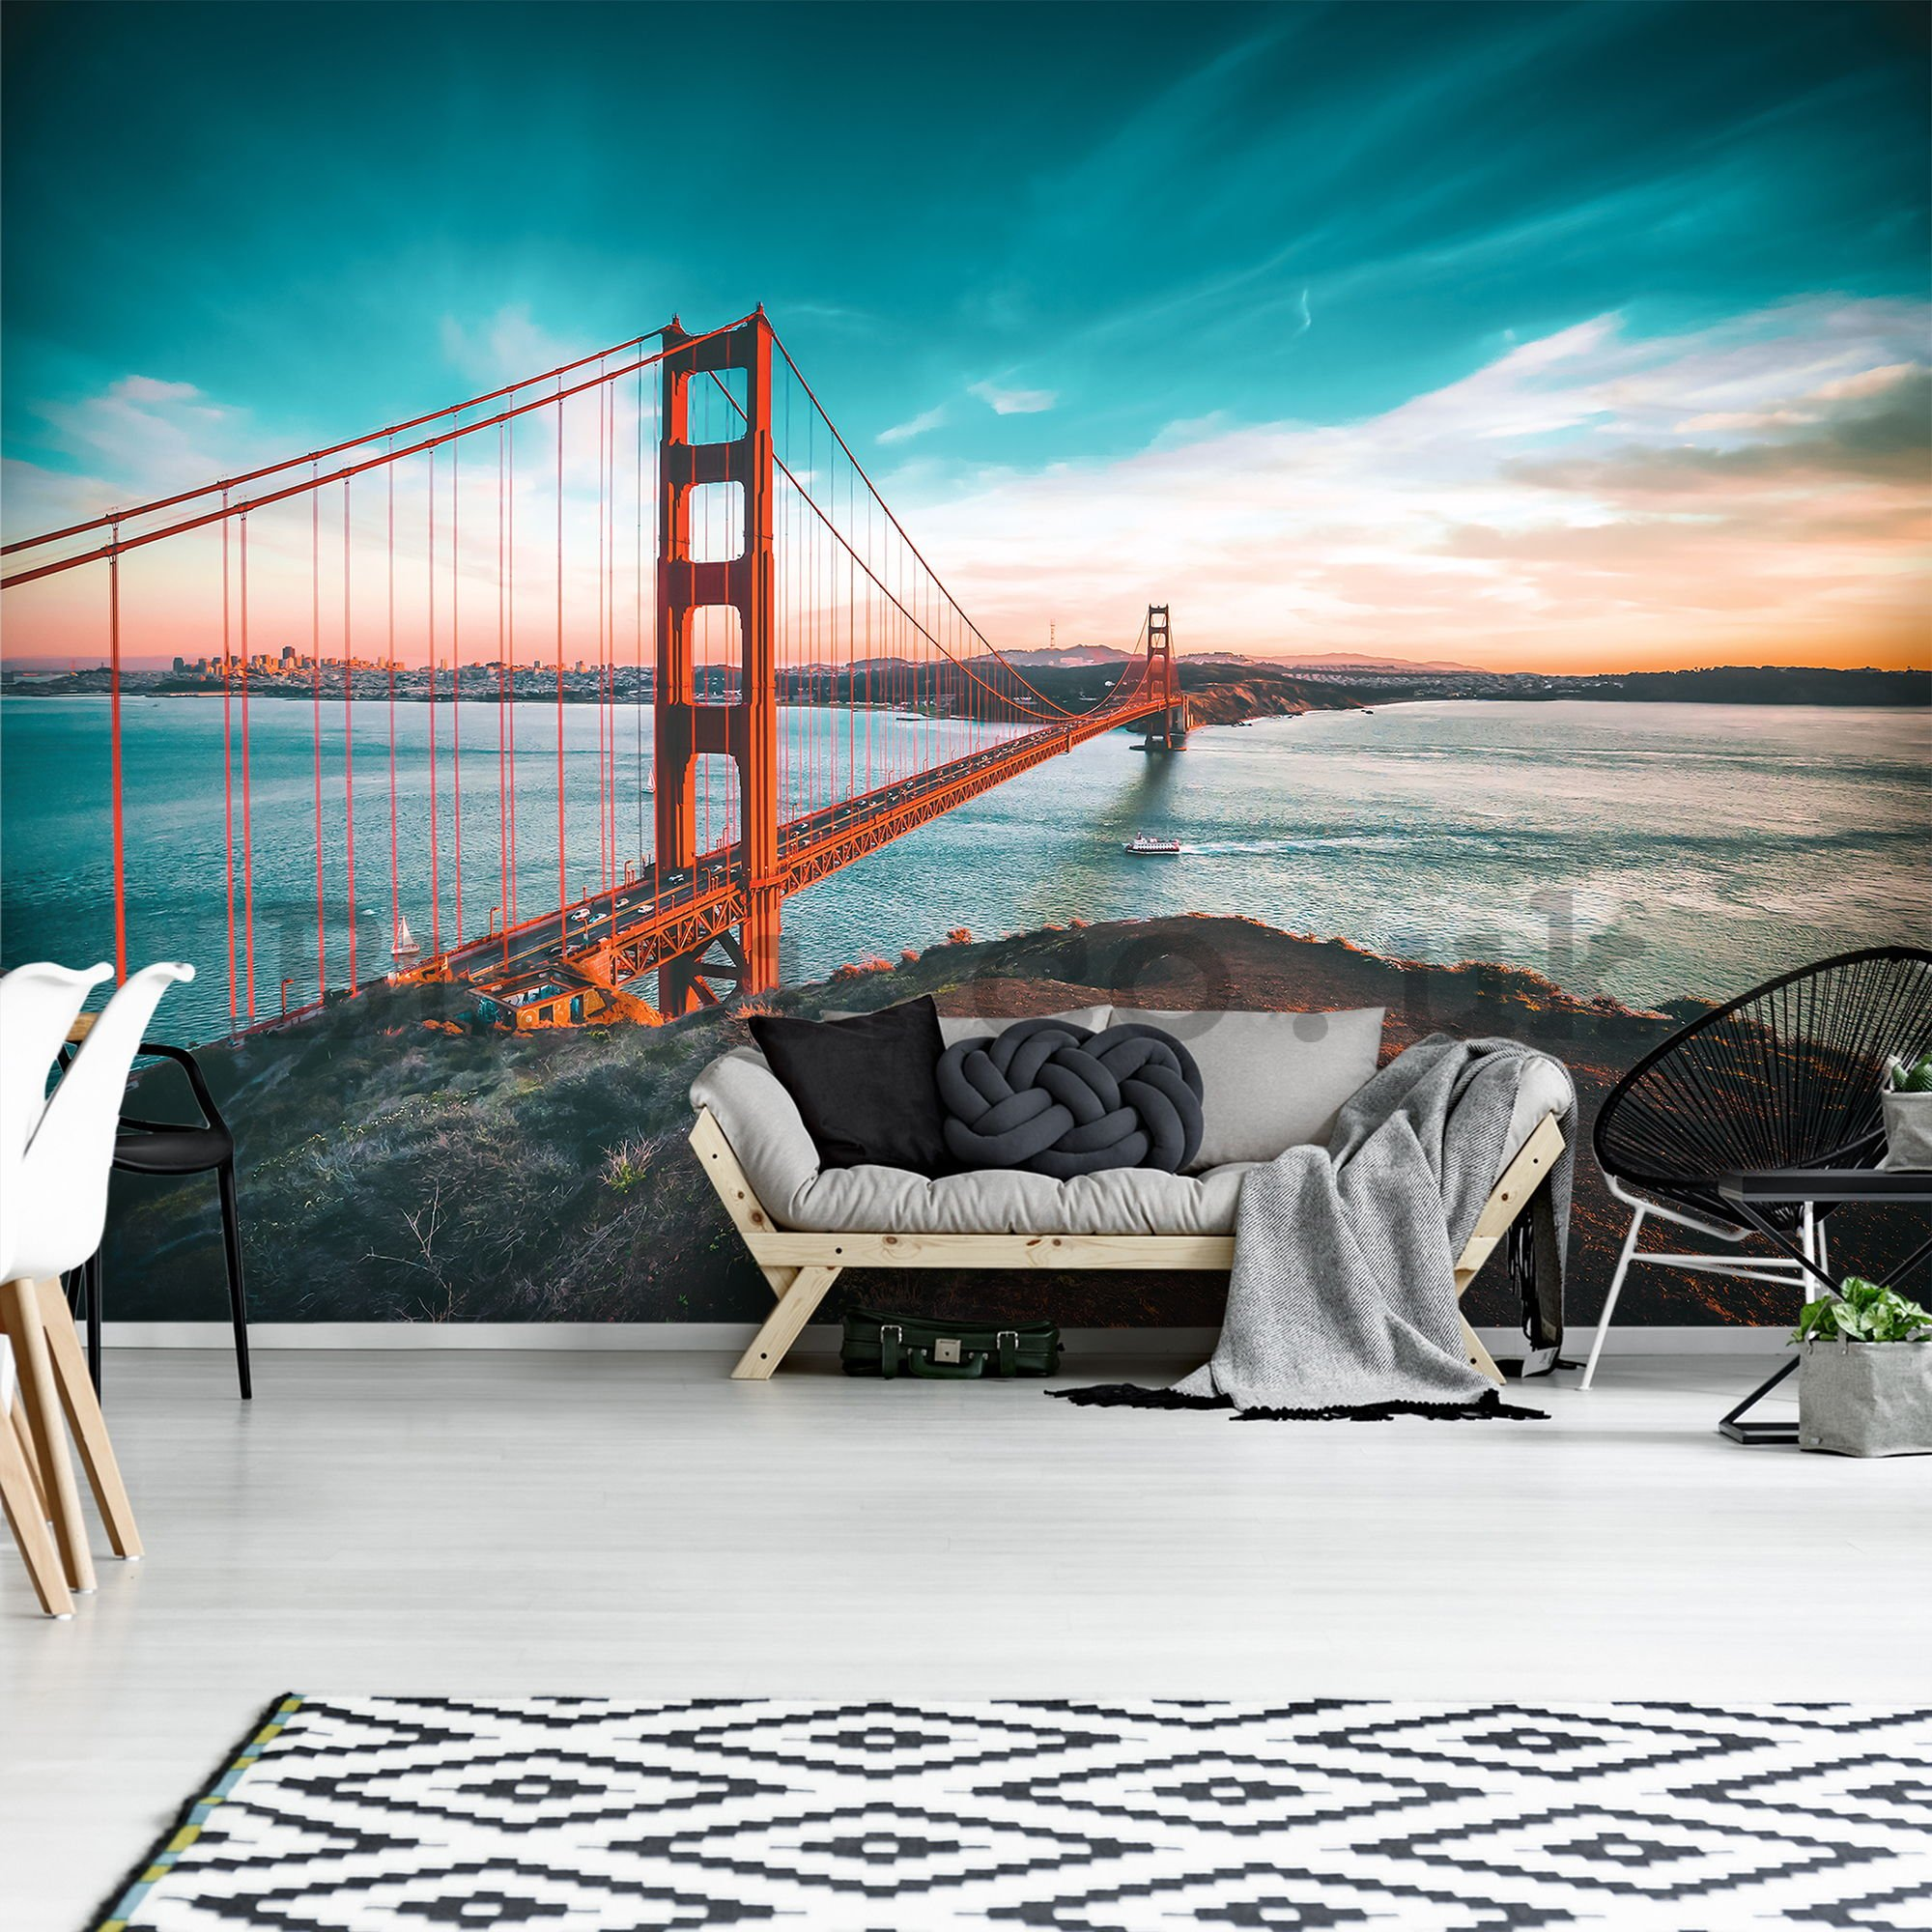 Wall mural: San Francisco Bridge - 104x152,5 cm